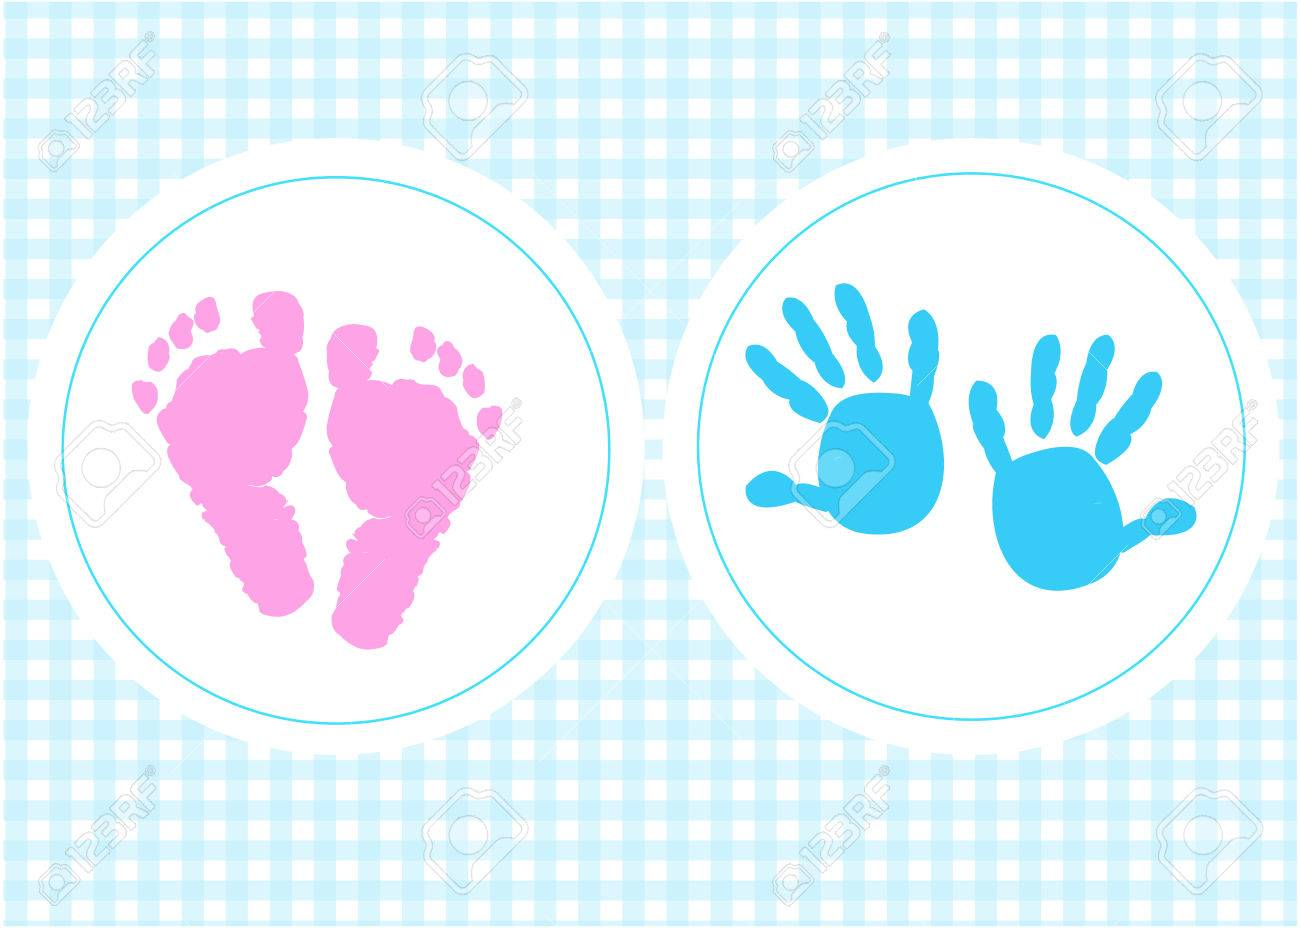 Baby foot prints baby shower greeting card with heart - 50327176